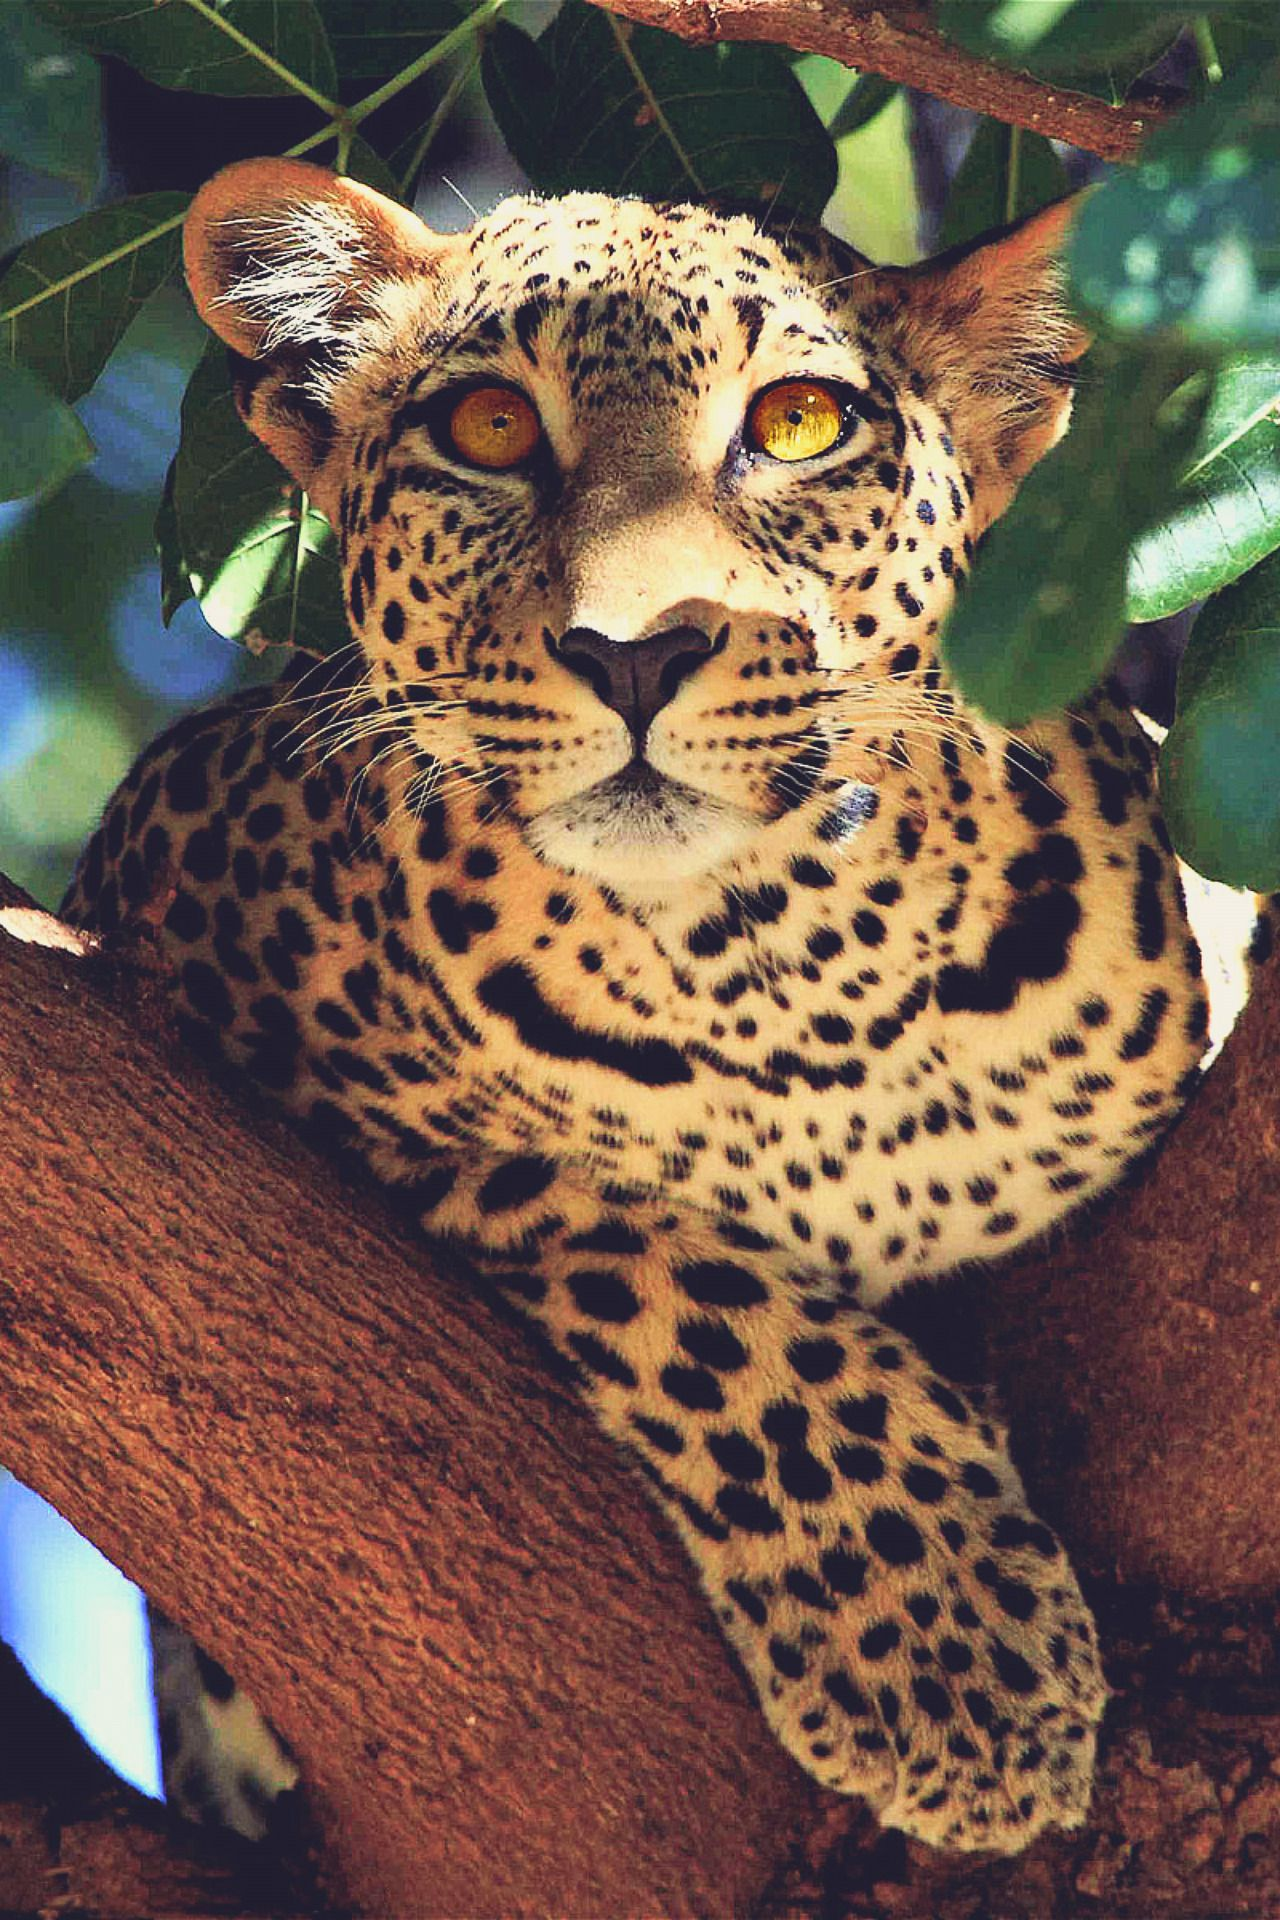 Some kind of jungle cat - love those eyes.